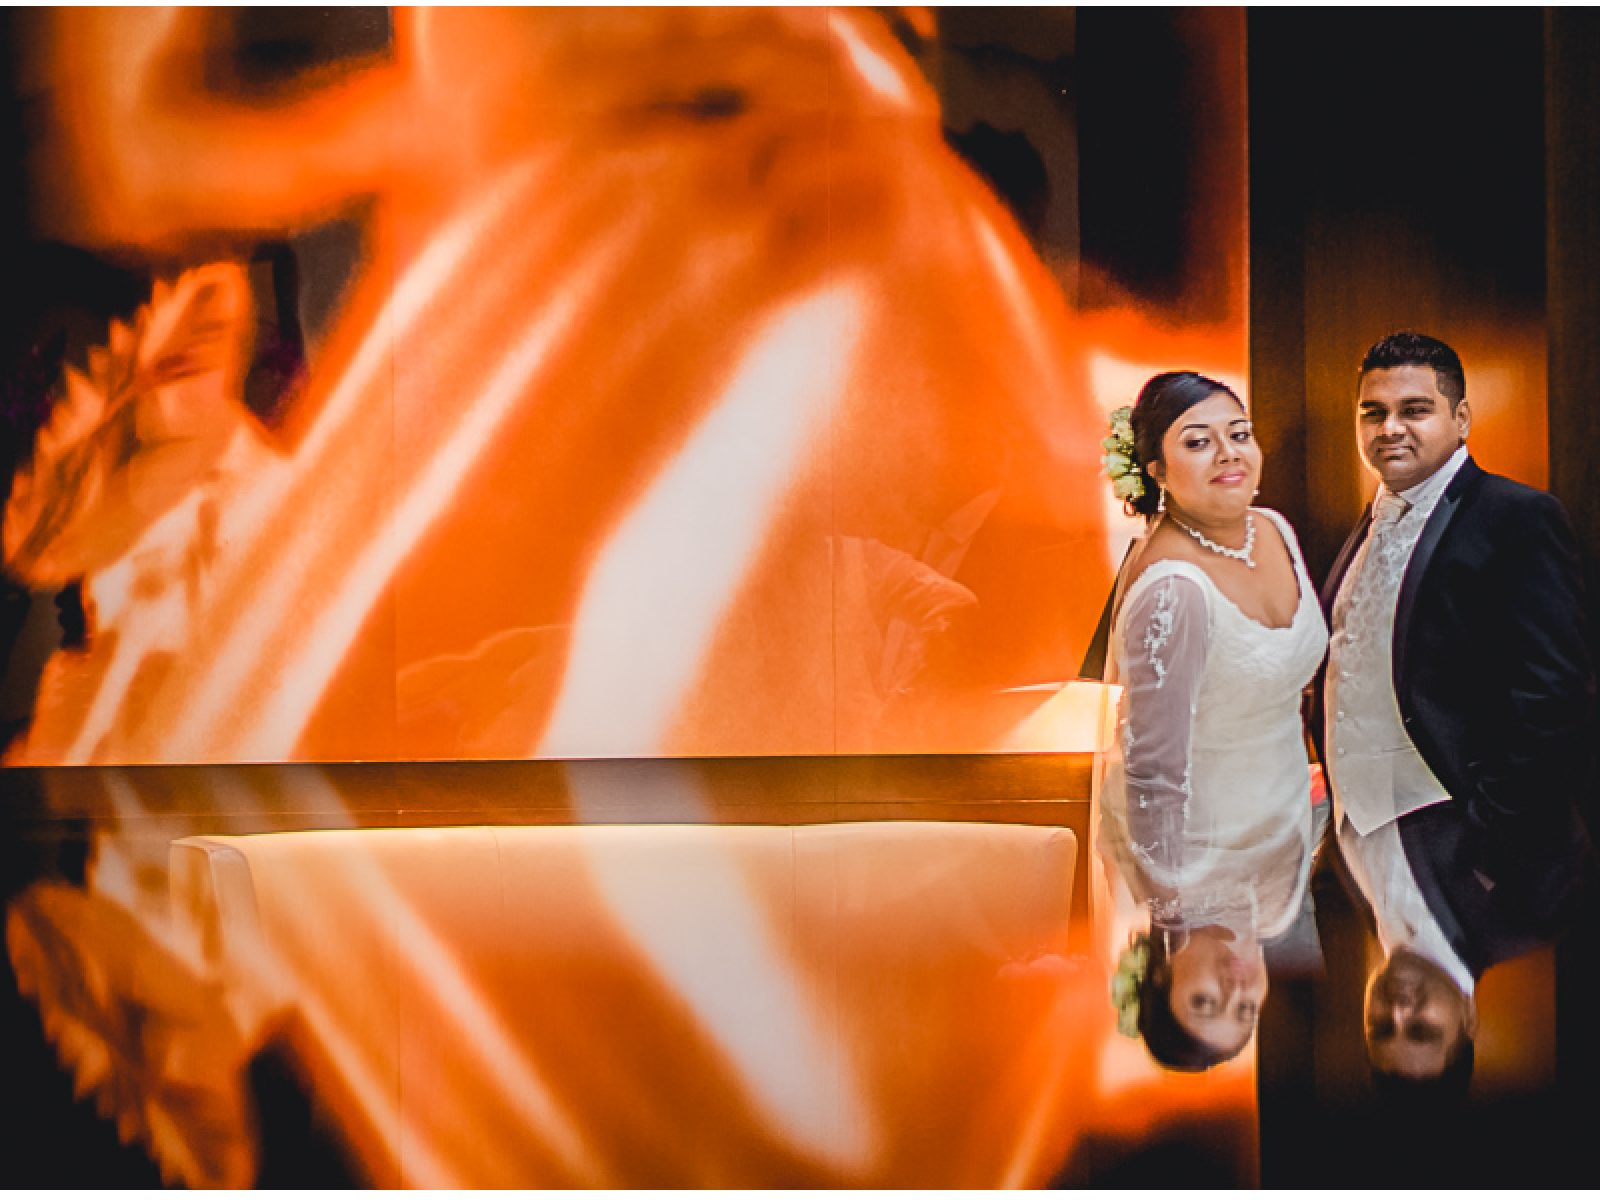 261 1600x1200 - Darshani and Anthony - wedding photographer in London